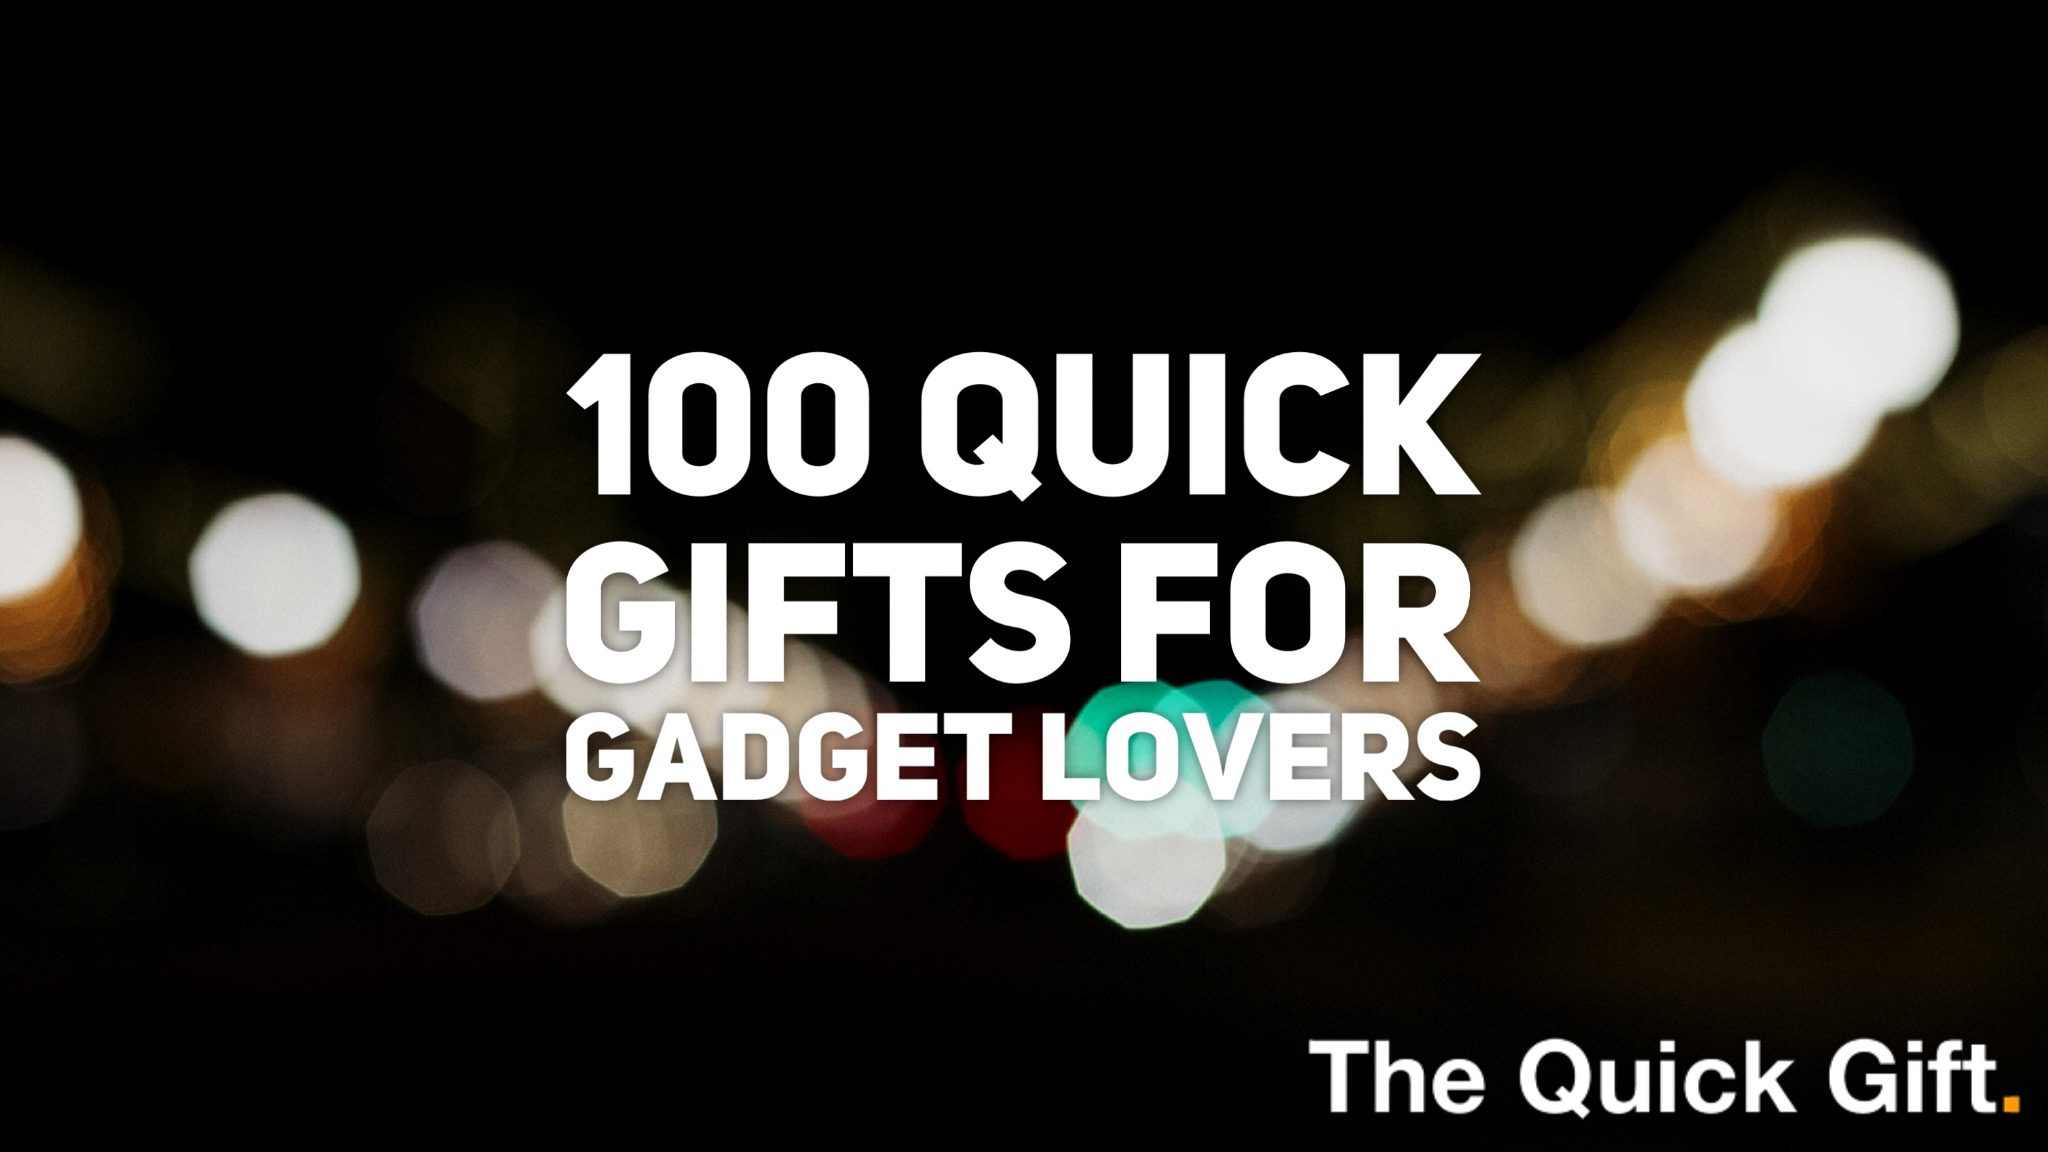 Last minute gift ideas for gadget lovers